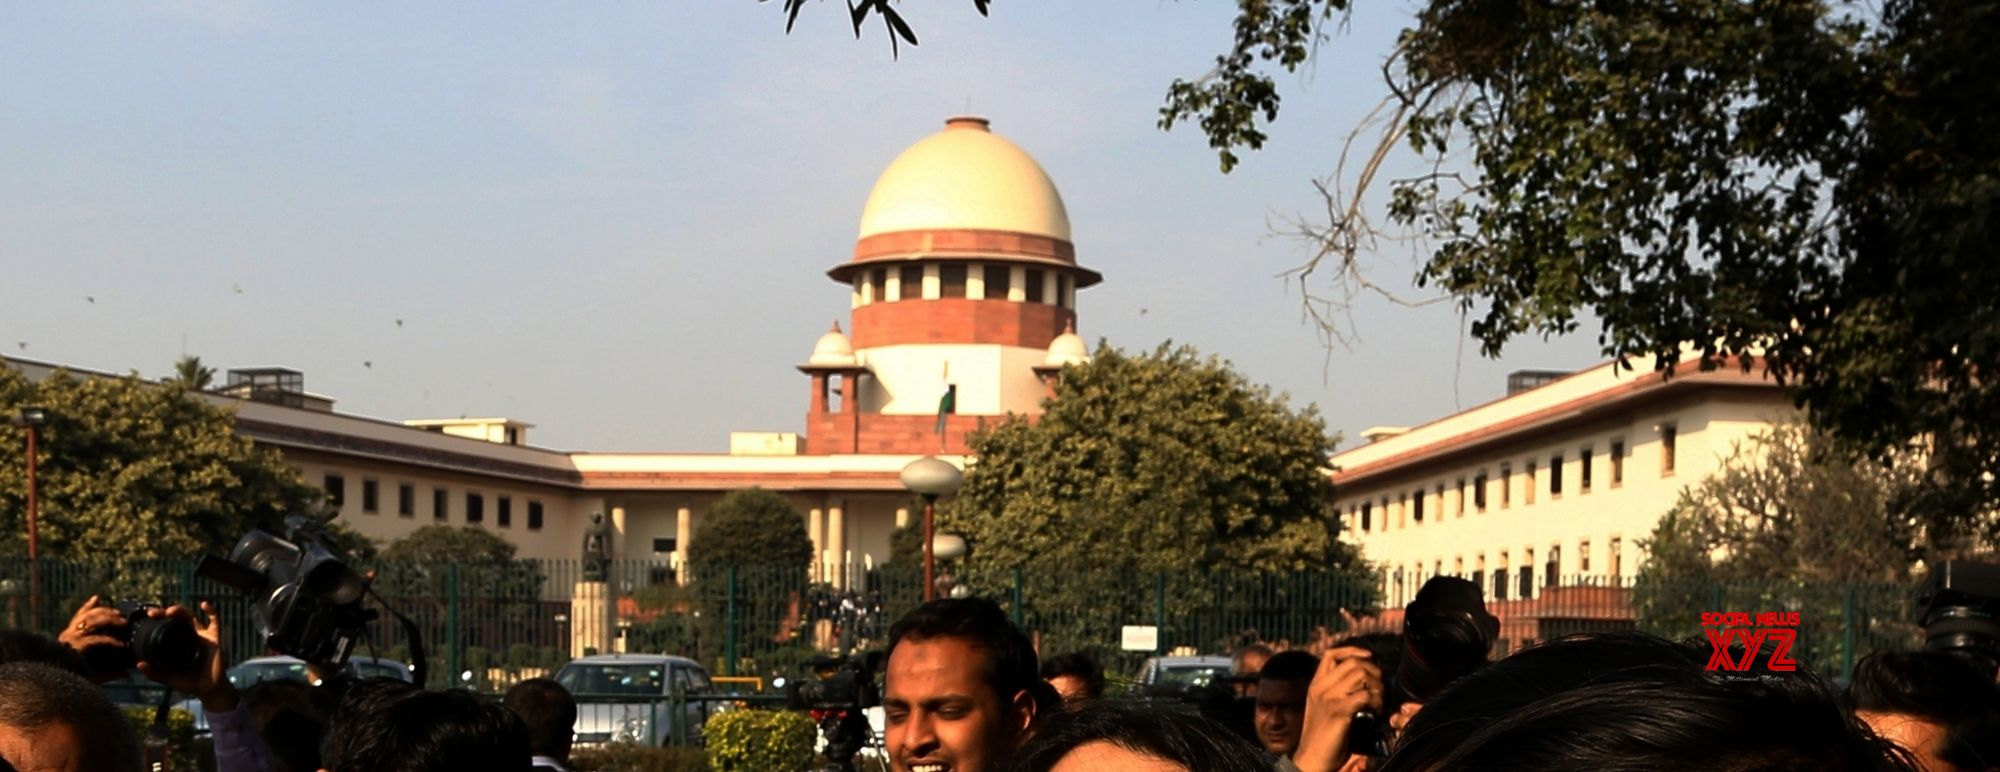 SC gives no relief to Bhima-Koregaon clash accused, sets aside HC order